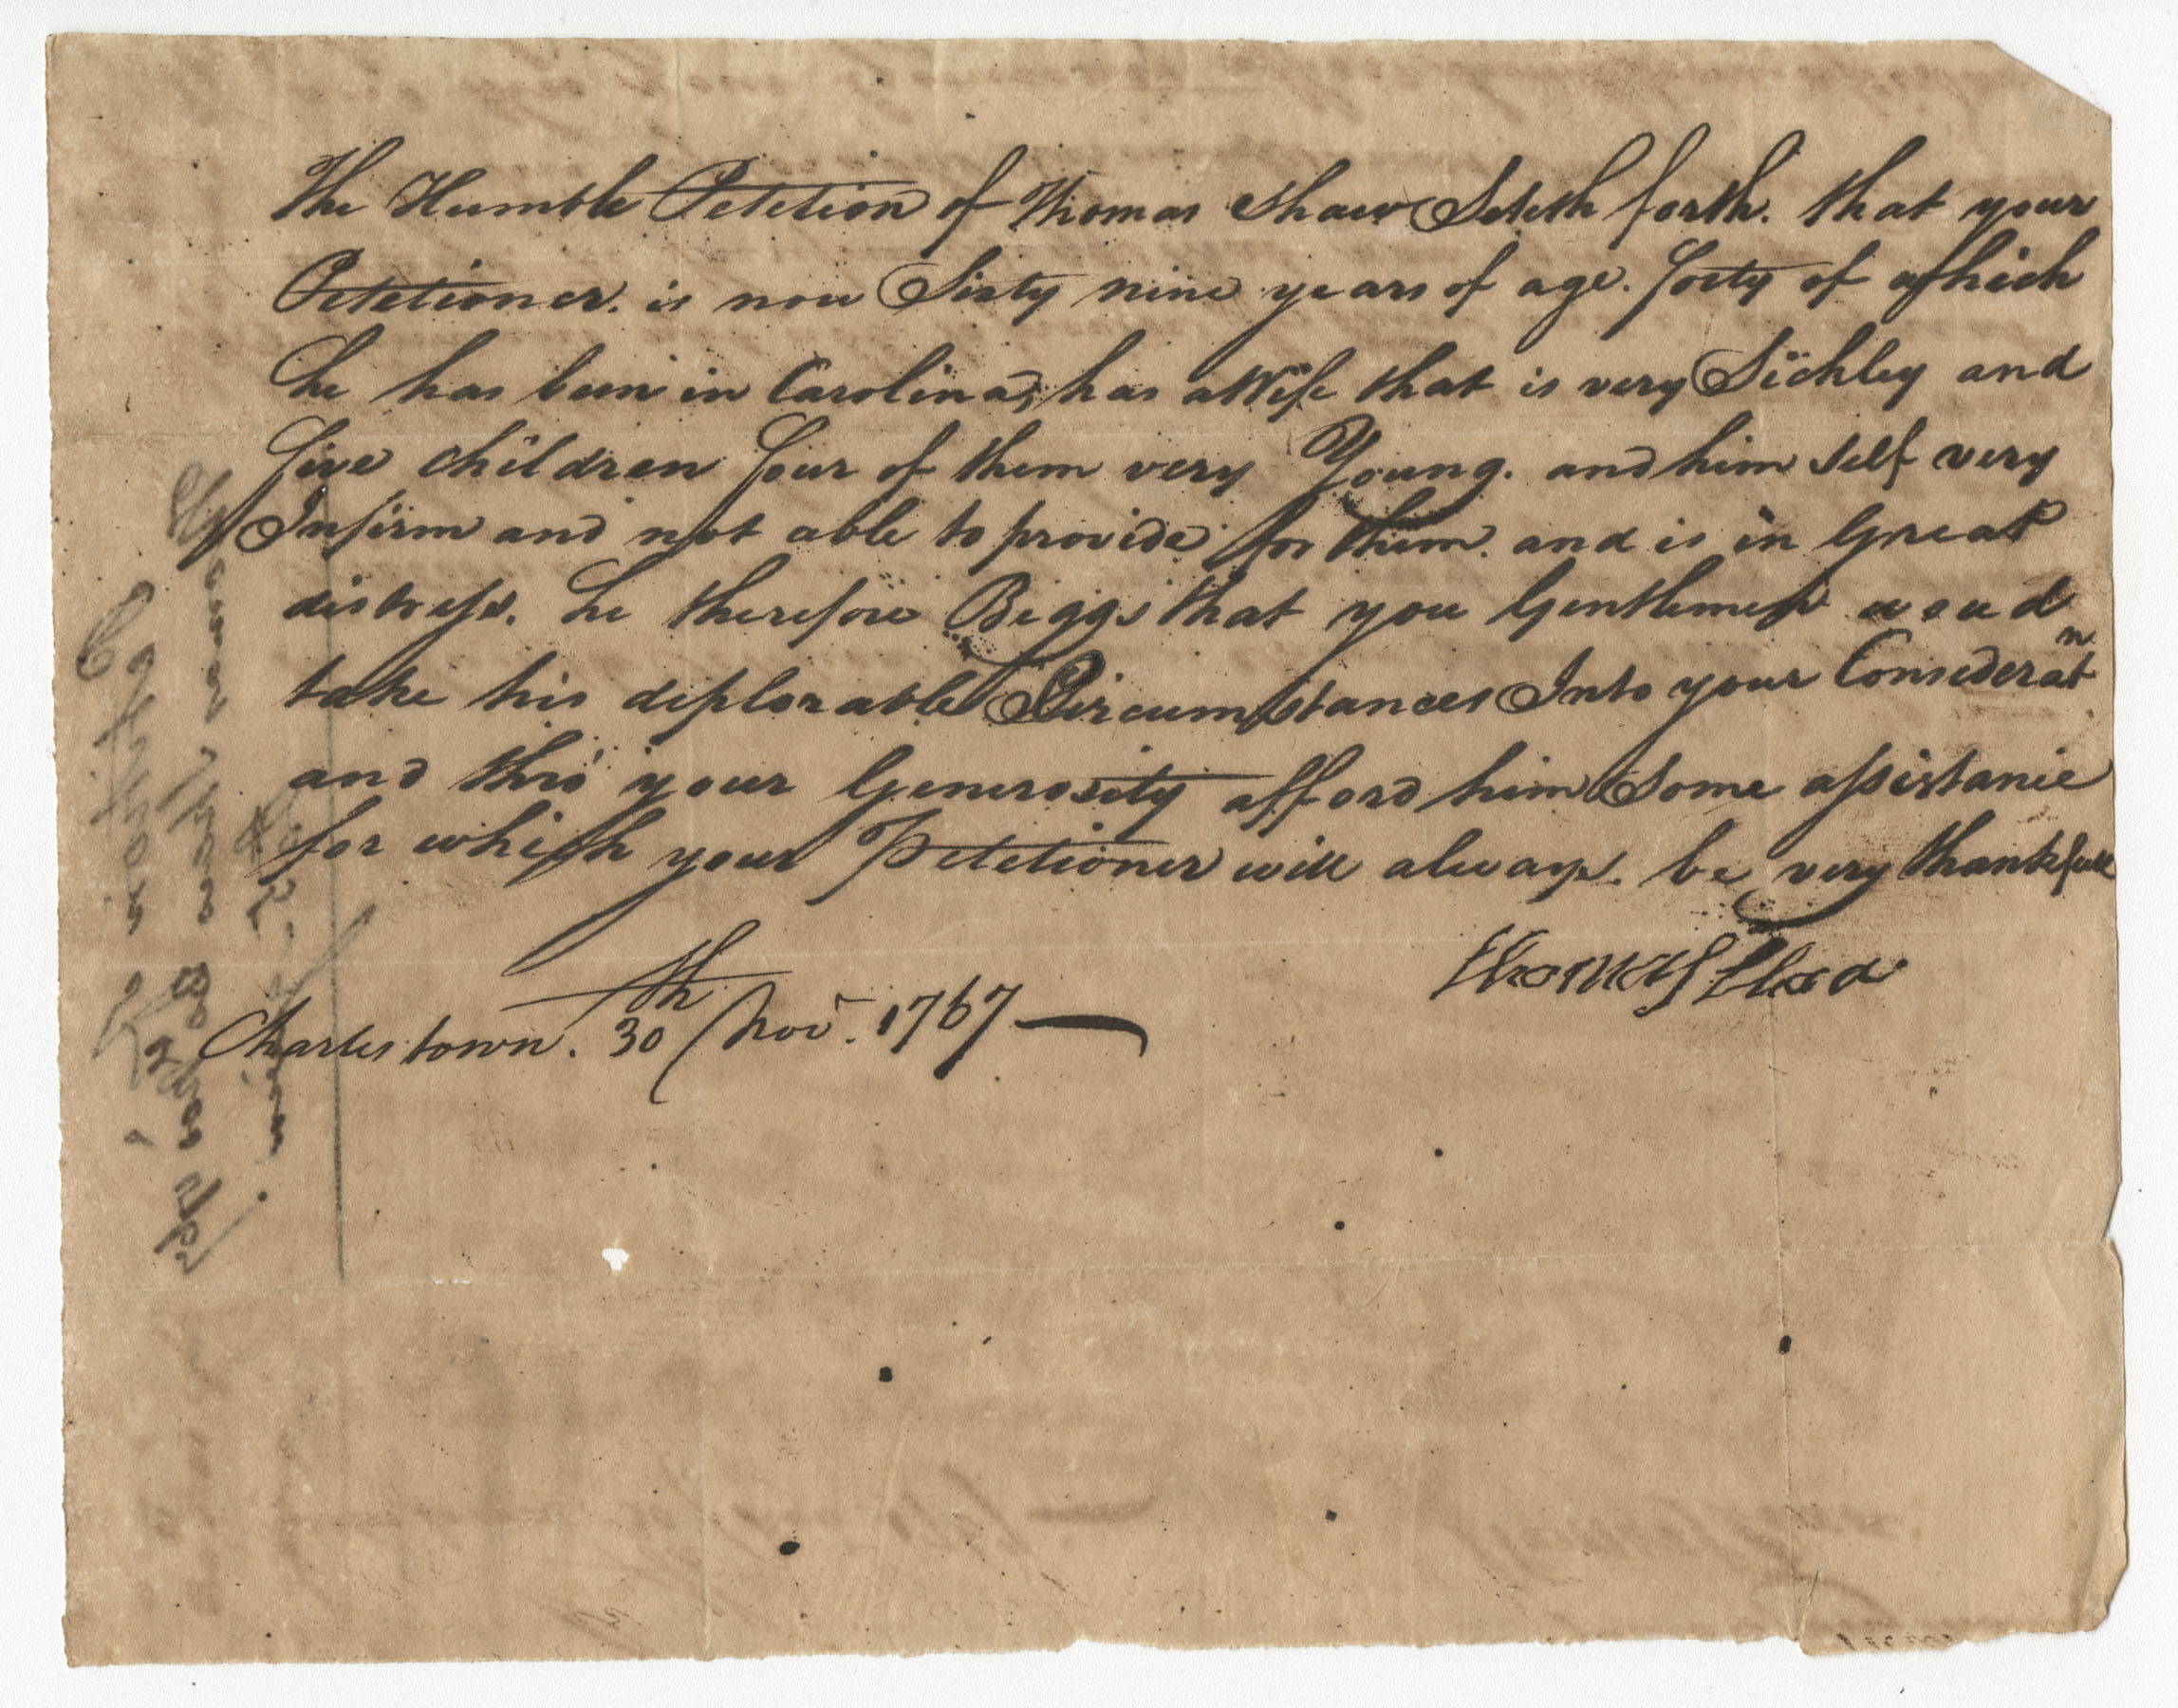 Petition from Thomas Shaw to the St. Andrew's Society